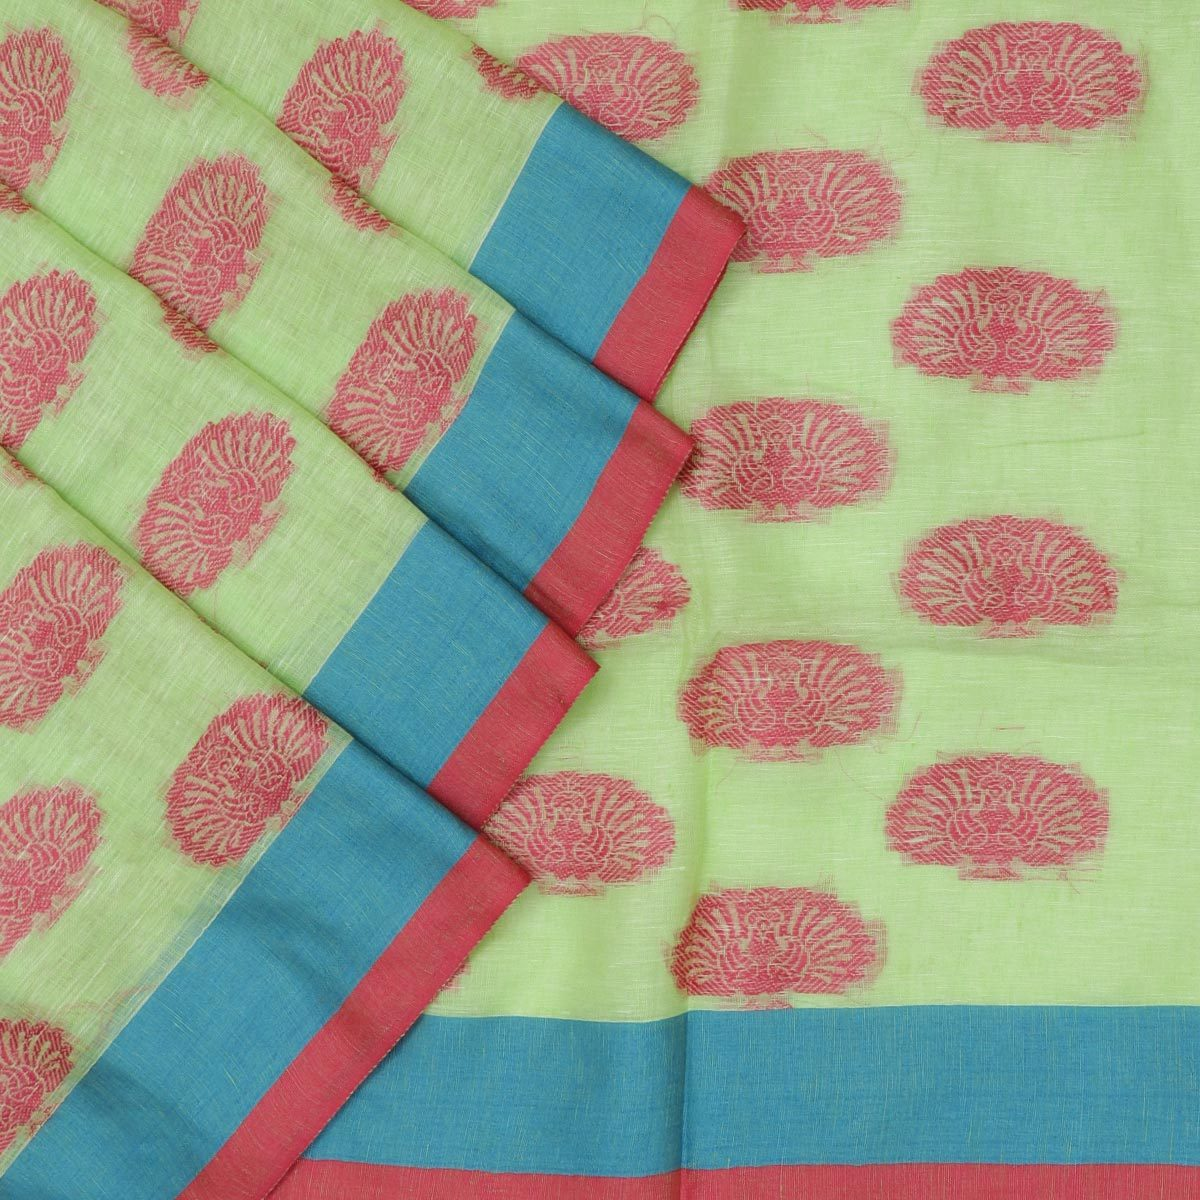 Linen Saree Light Green and Pink with Peacock thread butta and simple border Partly